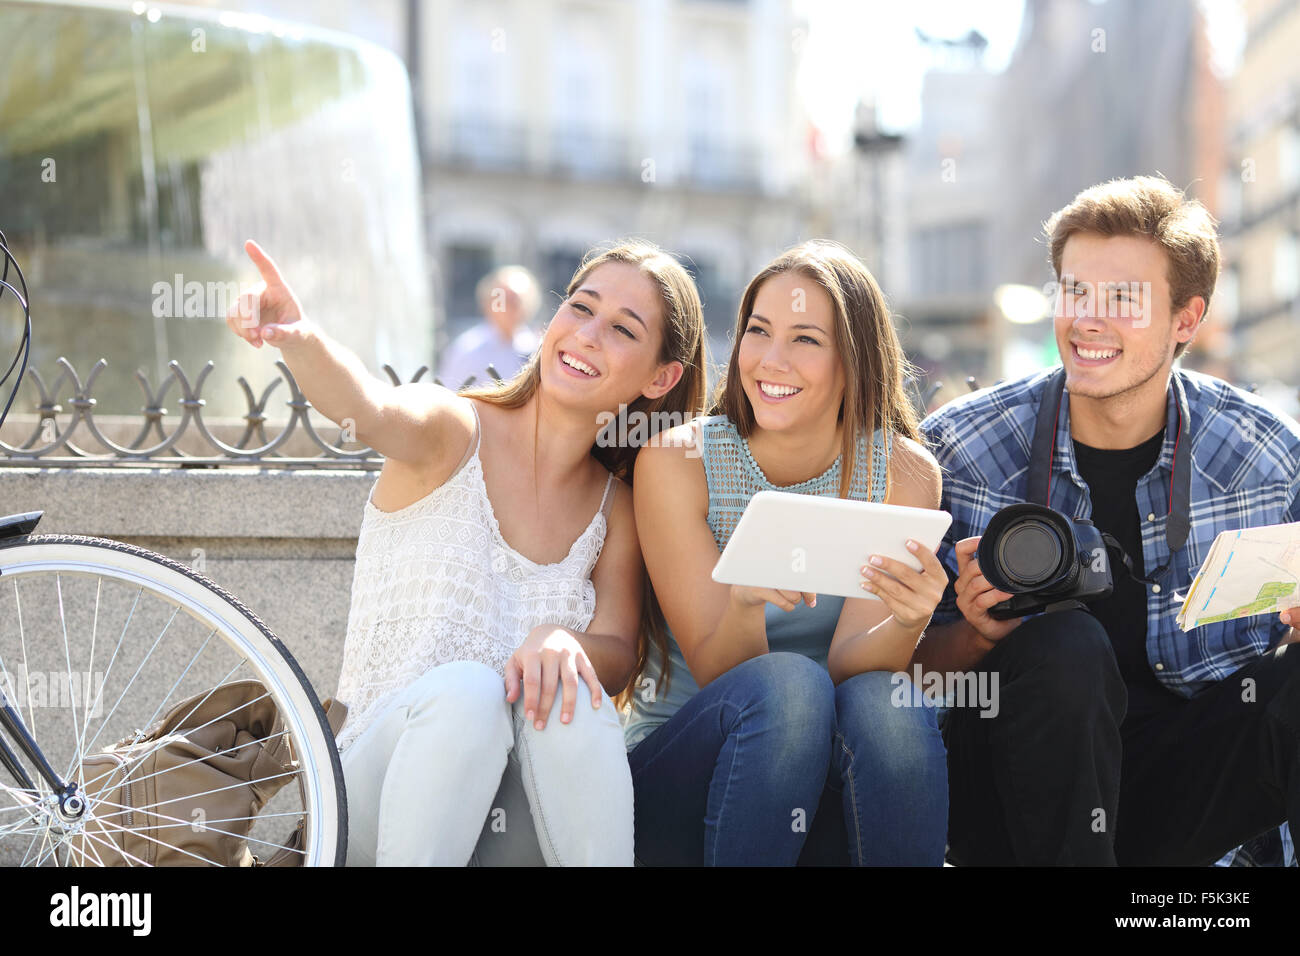 Tourist friends searching locations sightseeing in a city street - Stock Image